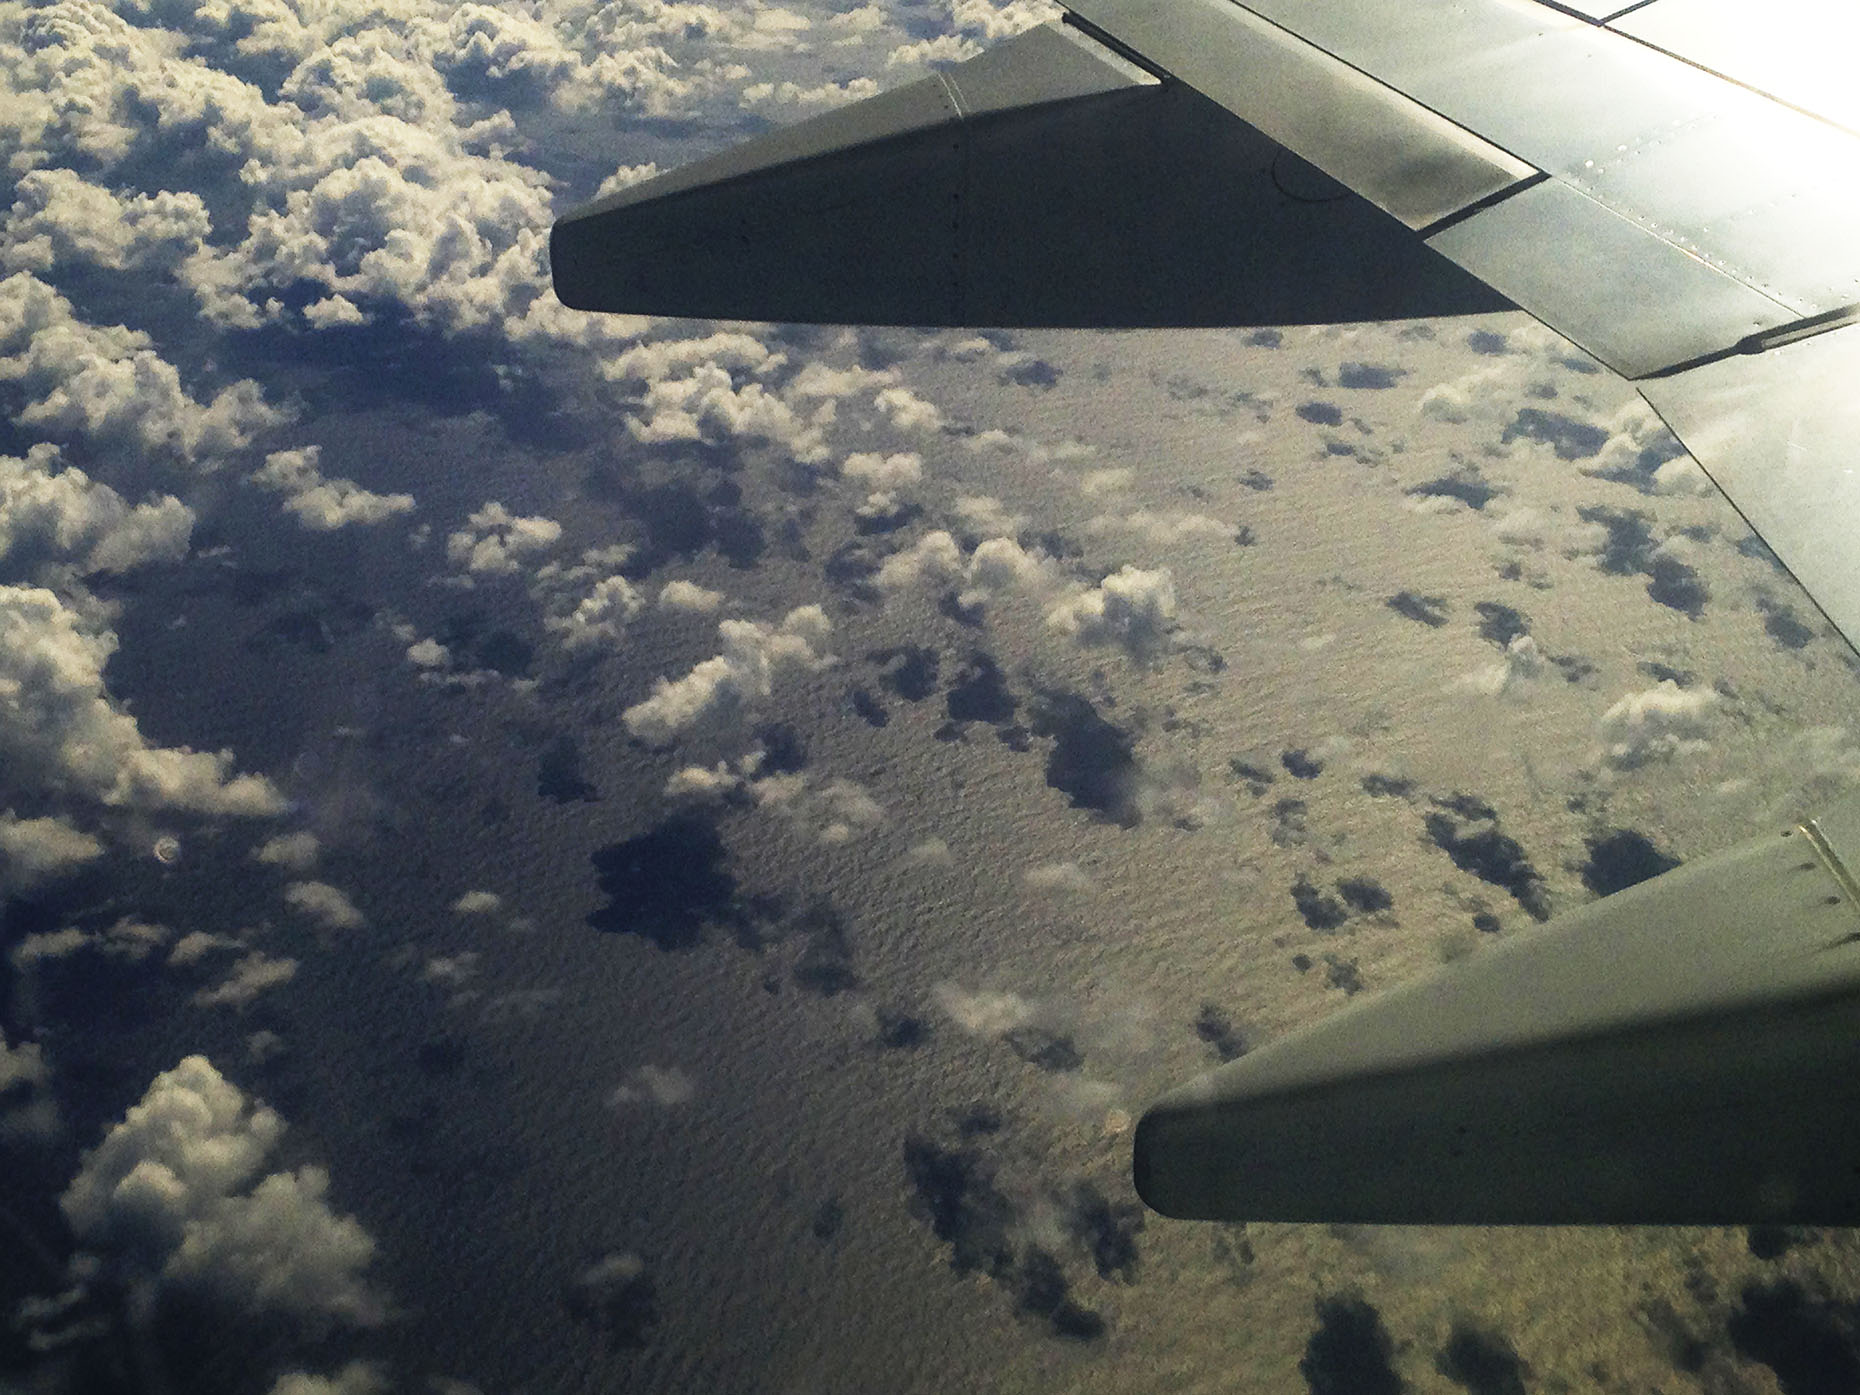 Flying over the Pacific Ocean